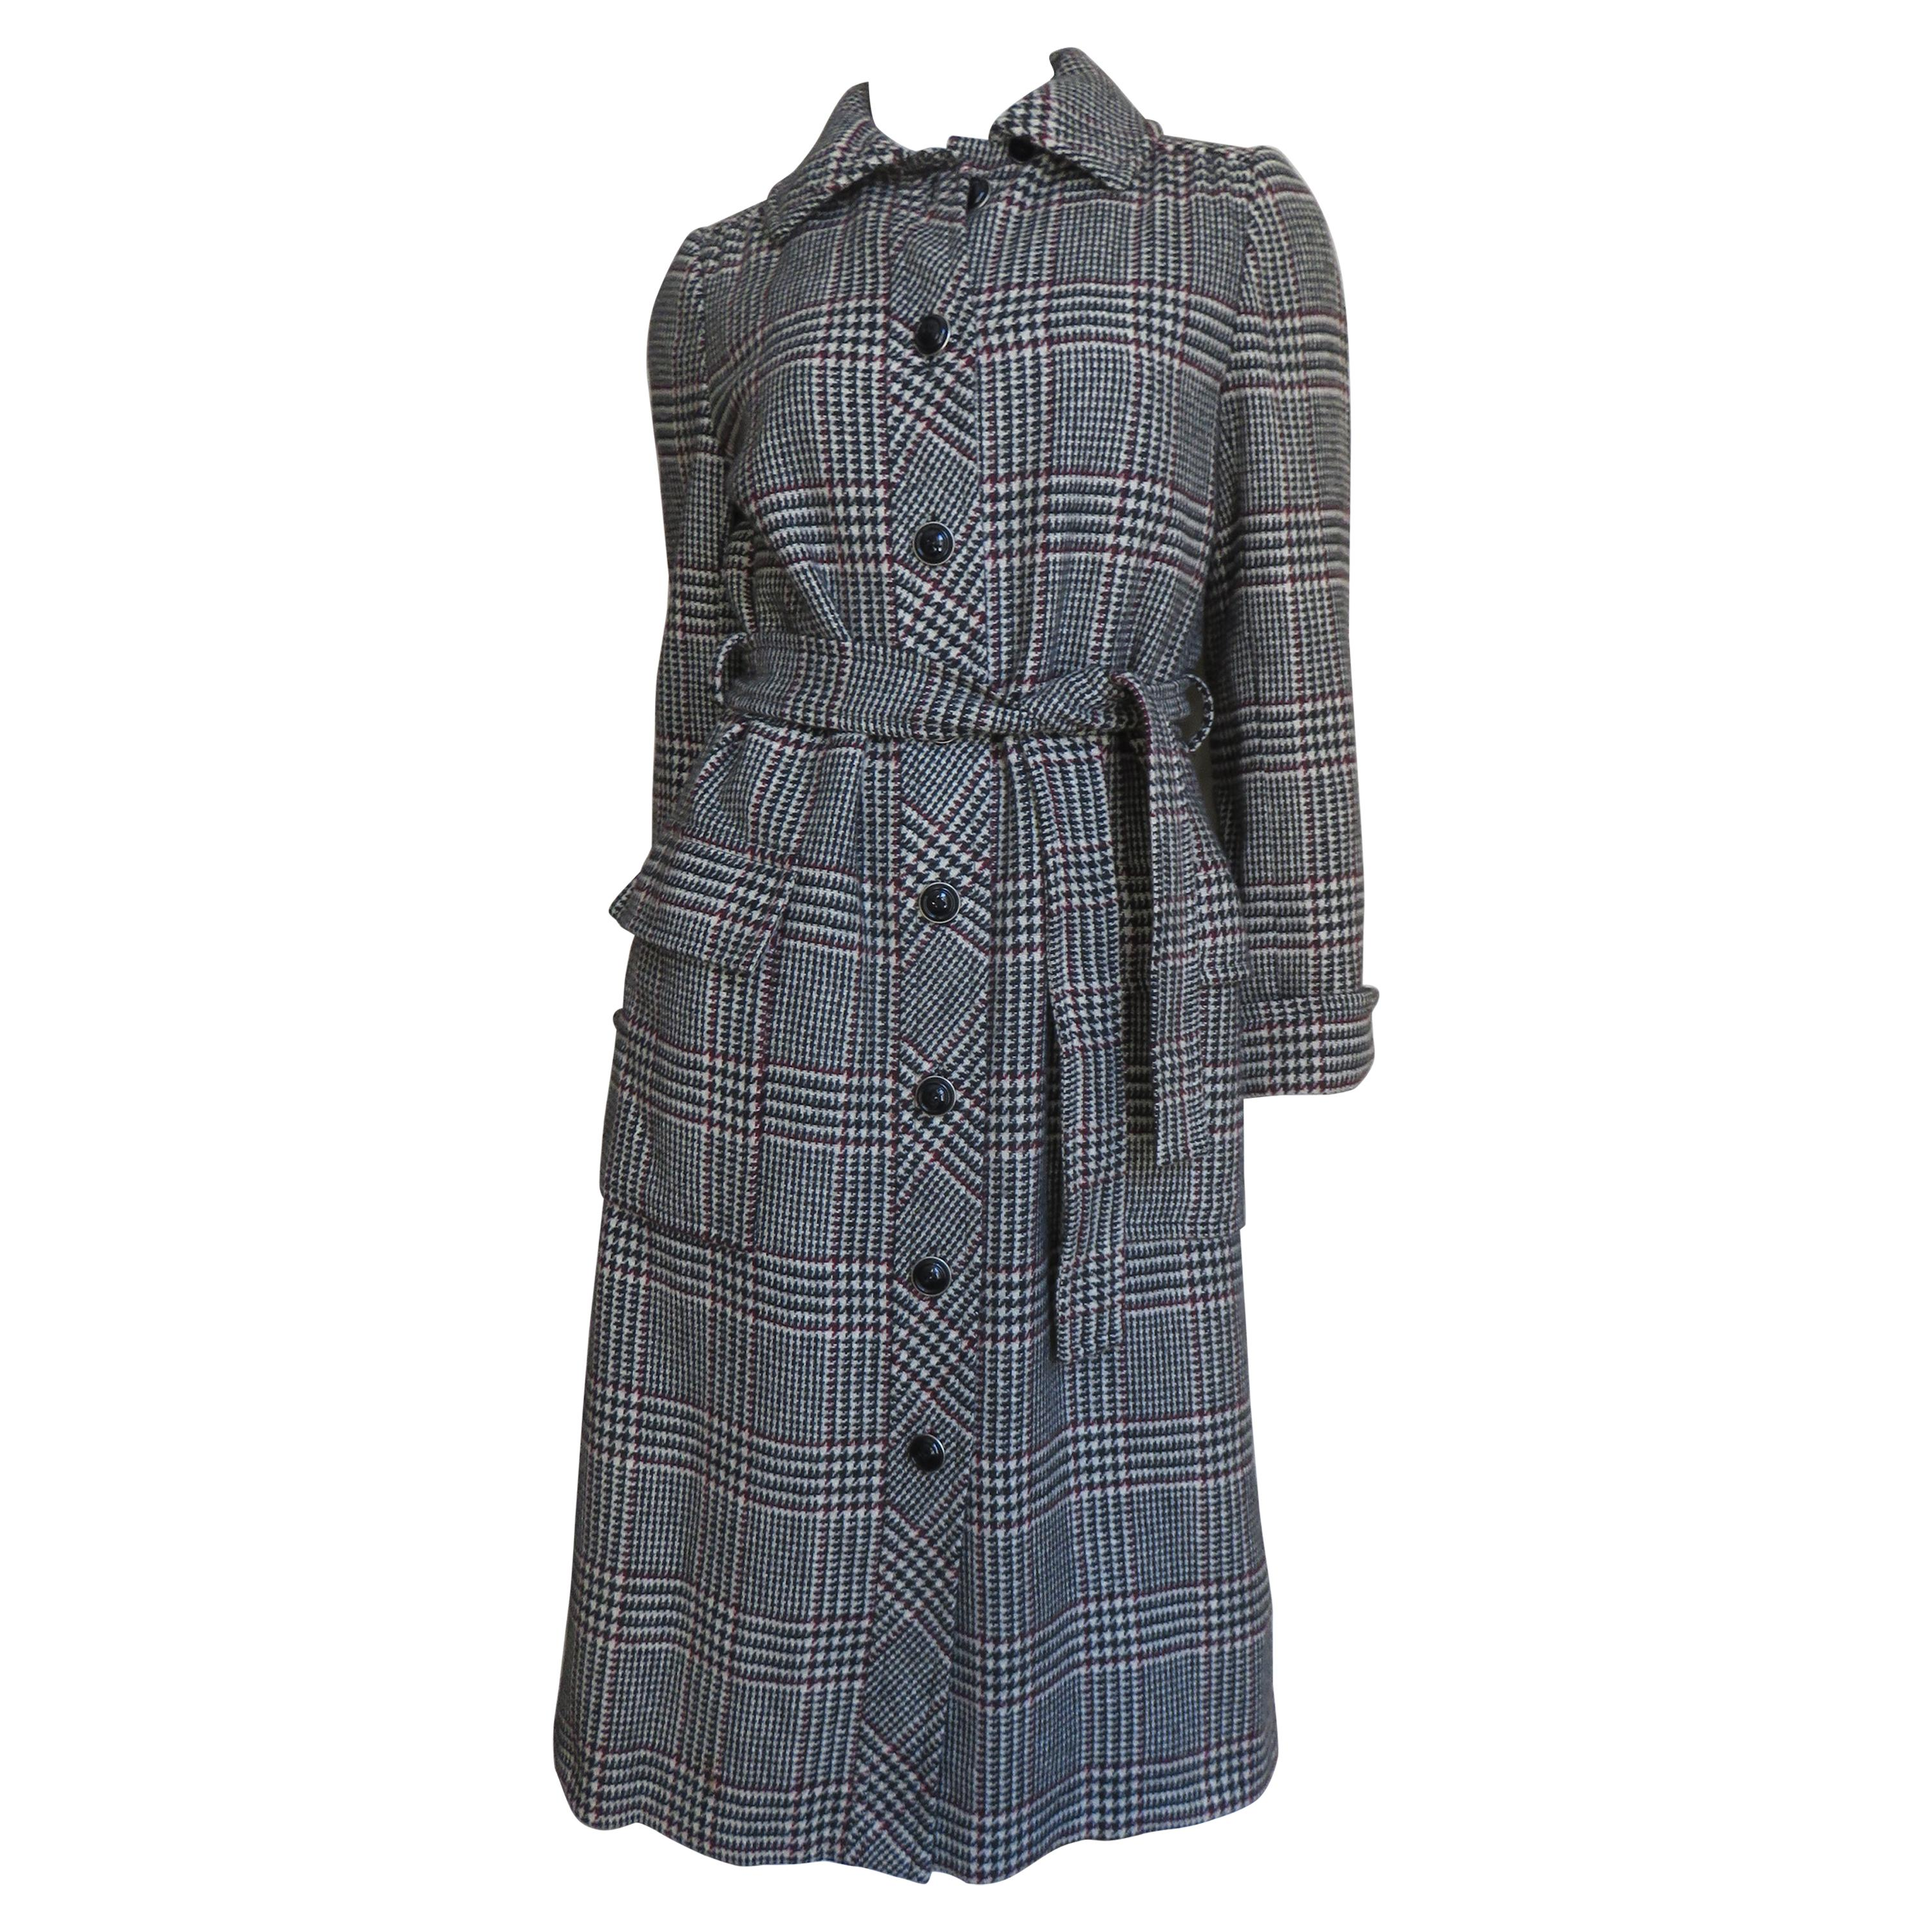 Adele Simpson Trench Coat and Skirt Set 1960s